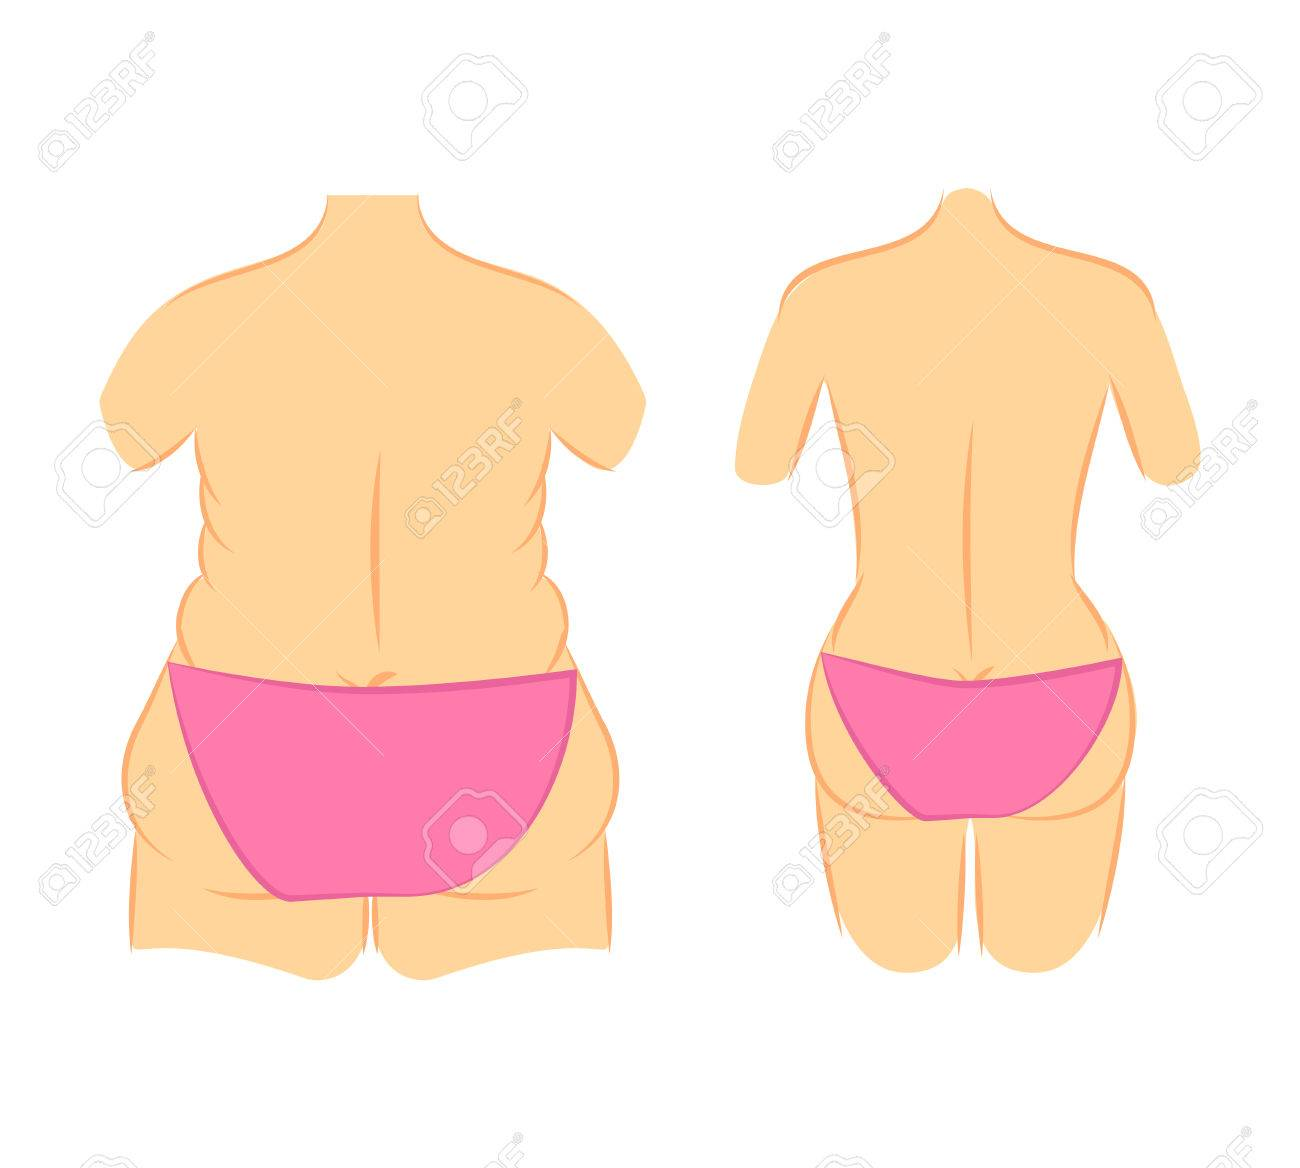 61280eb182 Medical Vector Illustration Two Types Female Figures In Panties ...